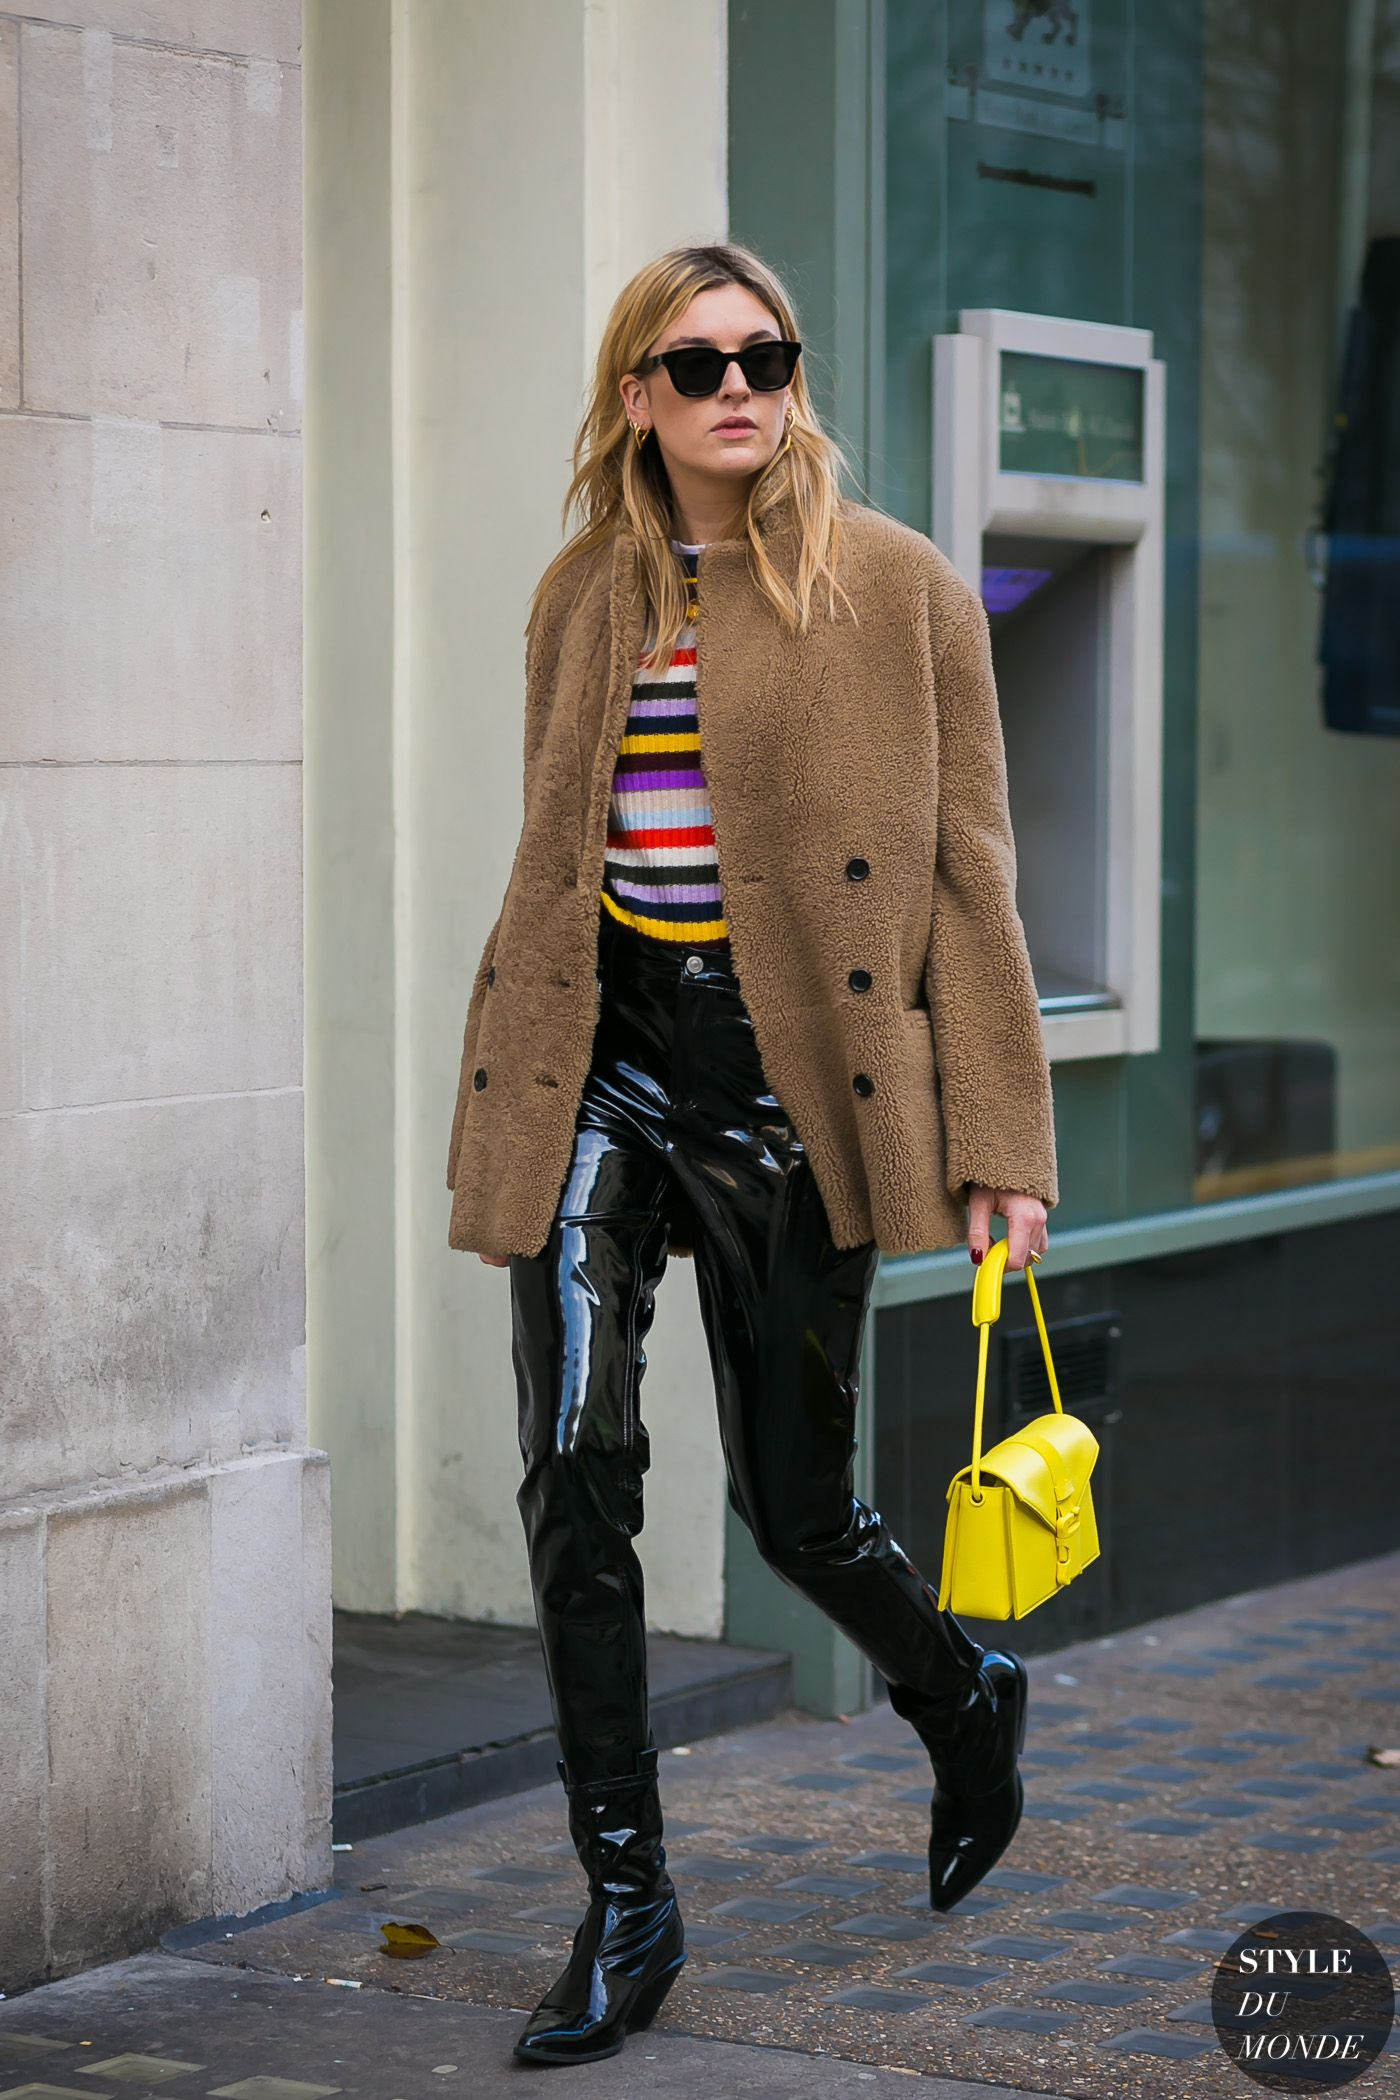 Camille Charriere by STYLEDUMONDE Street Style Fashion Photography0E2A9463